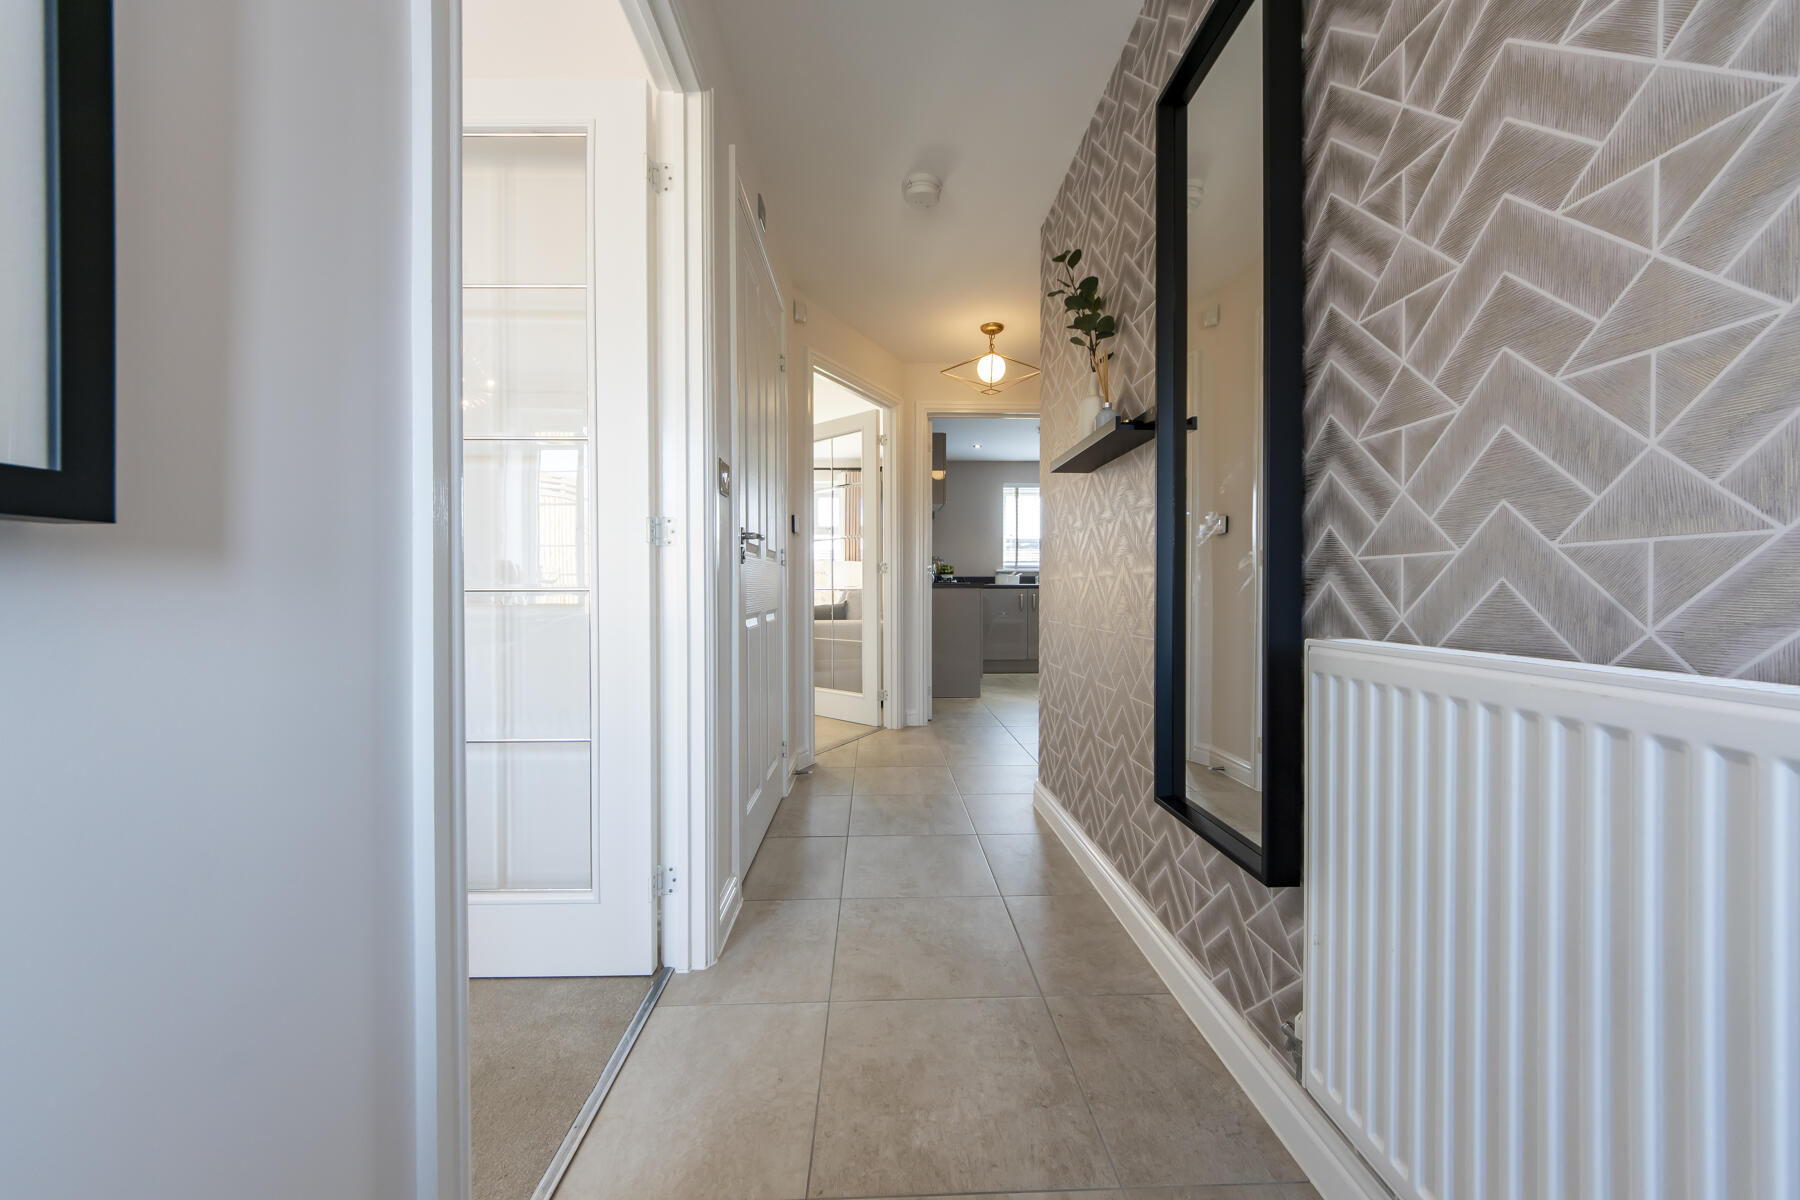 Aldenham-3bedroom-showhome_03_1800x1200